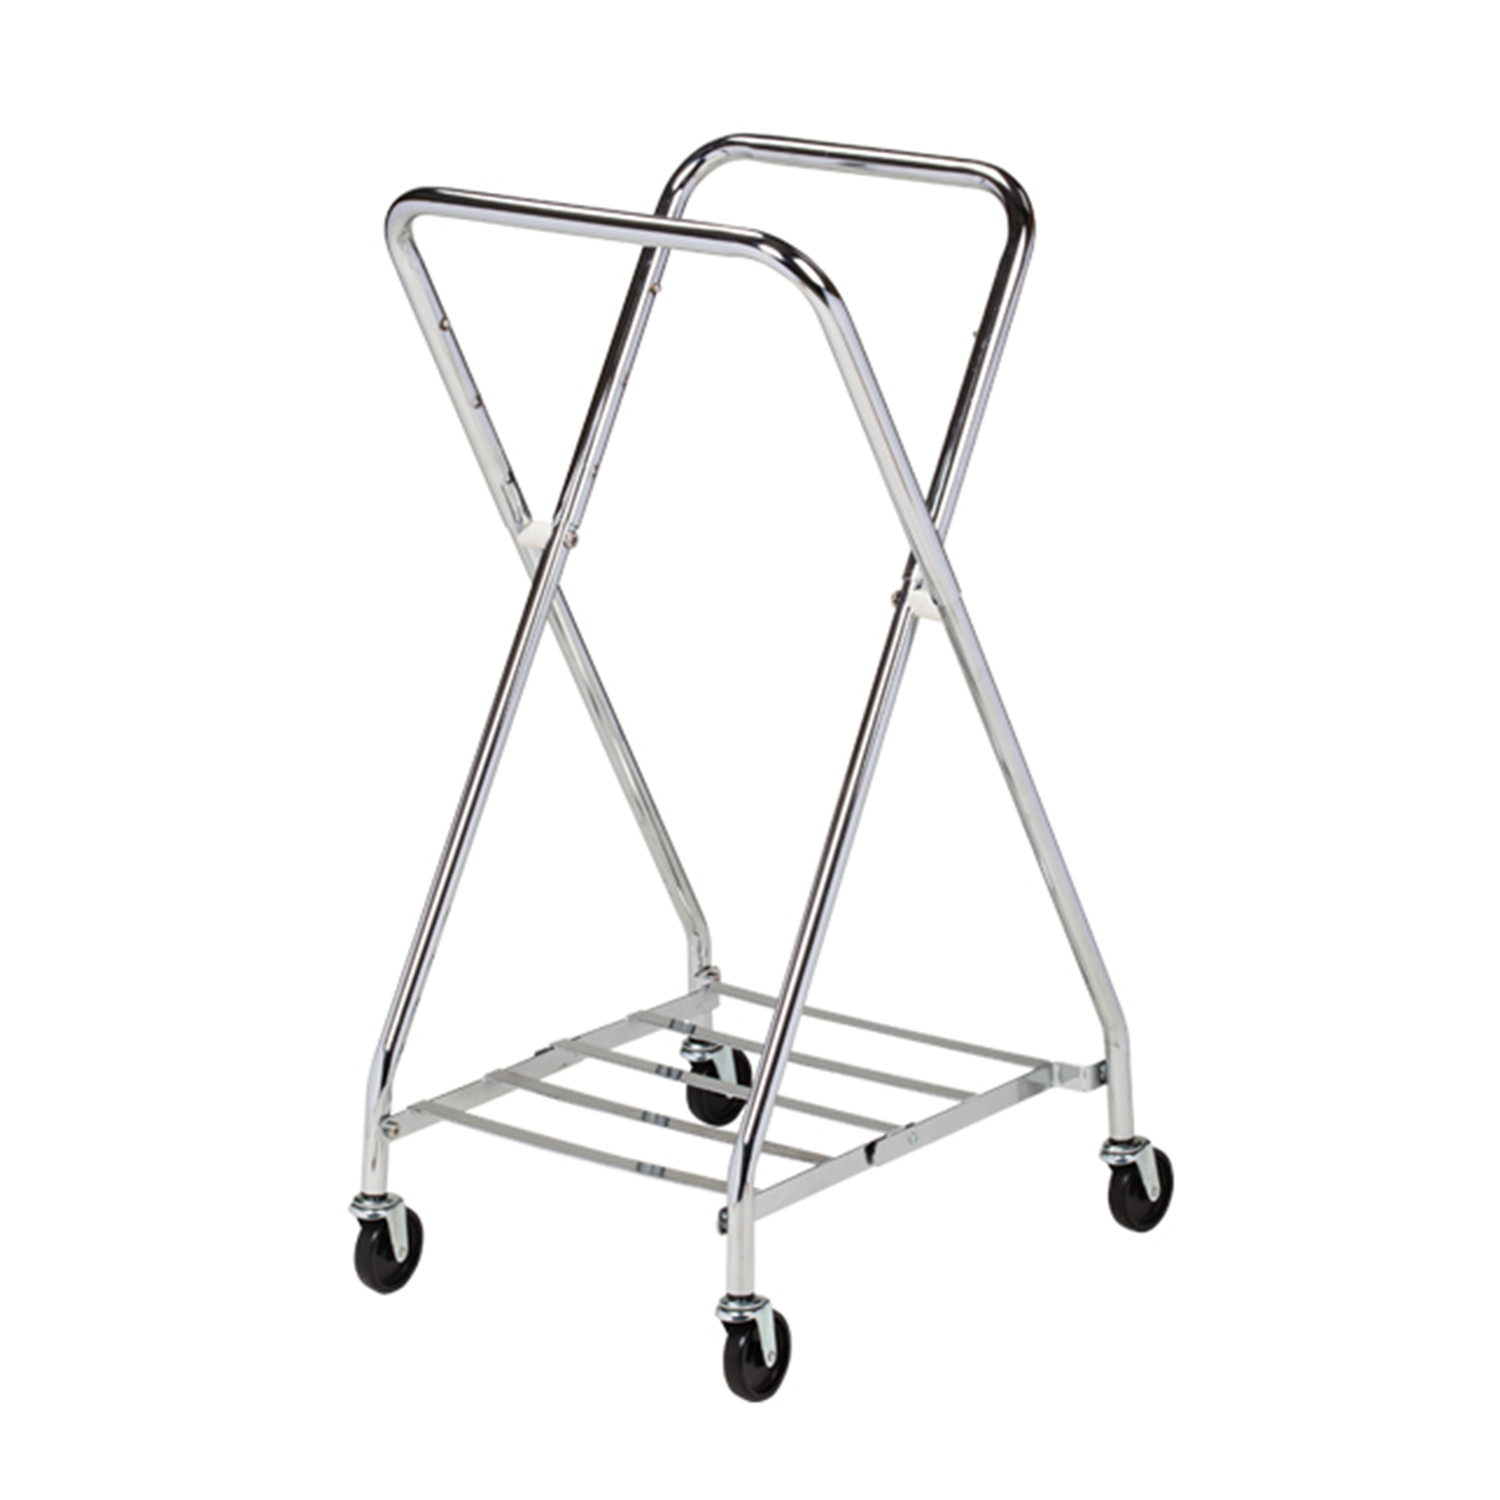 Clinton Adjustable Folding Hamper